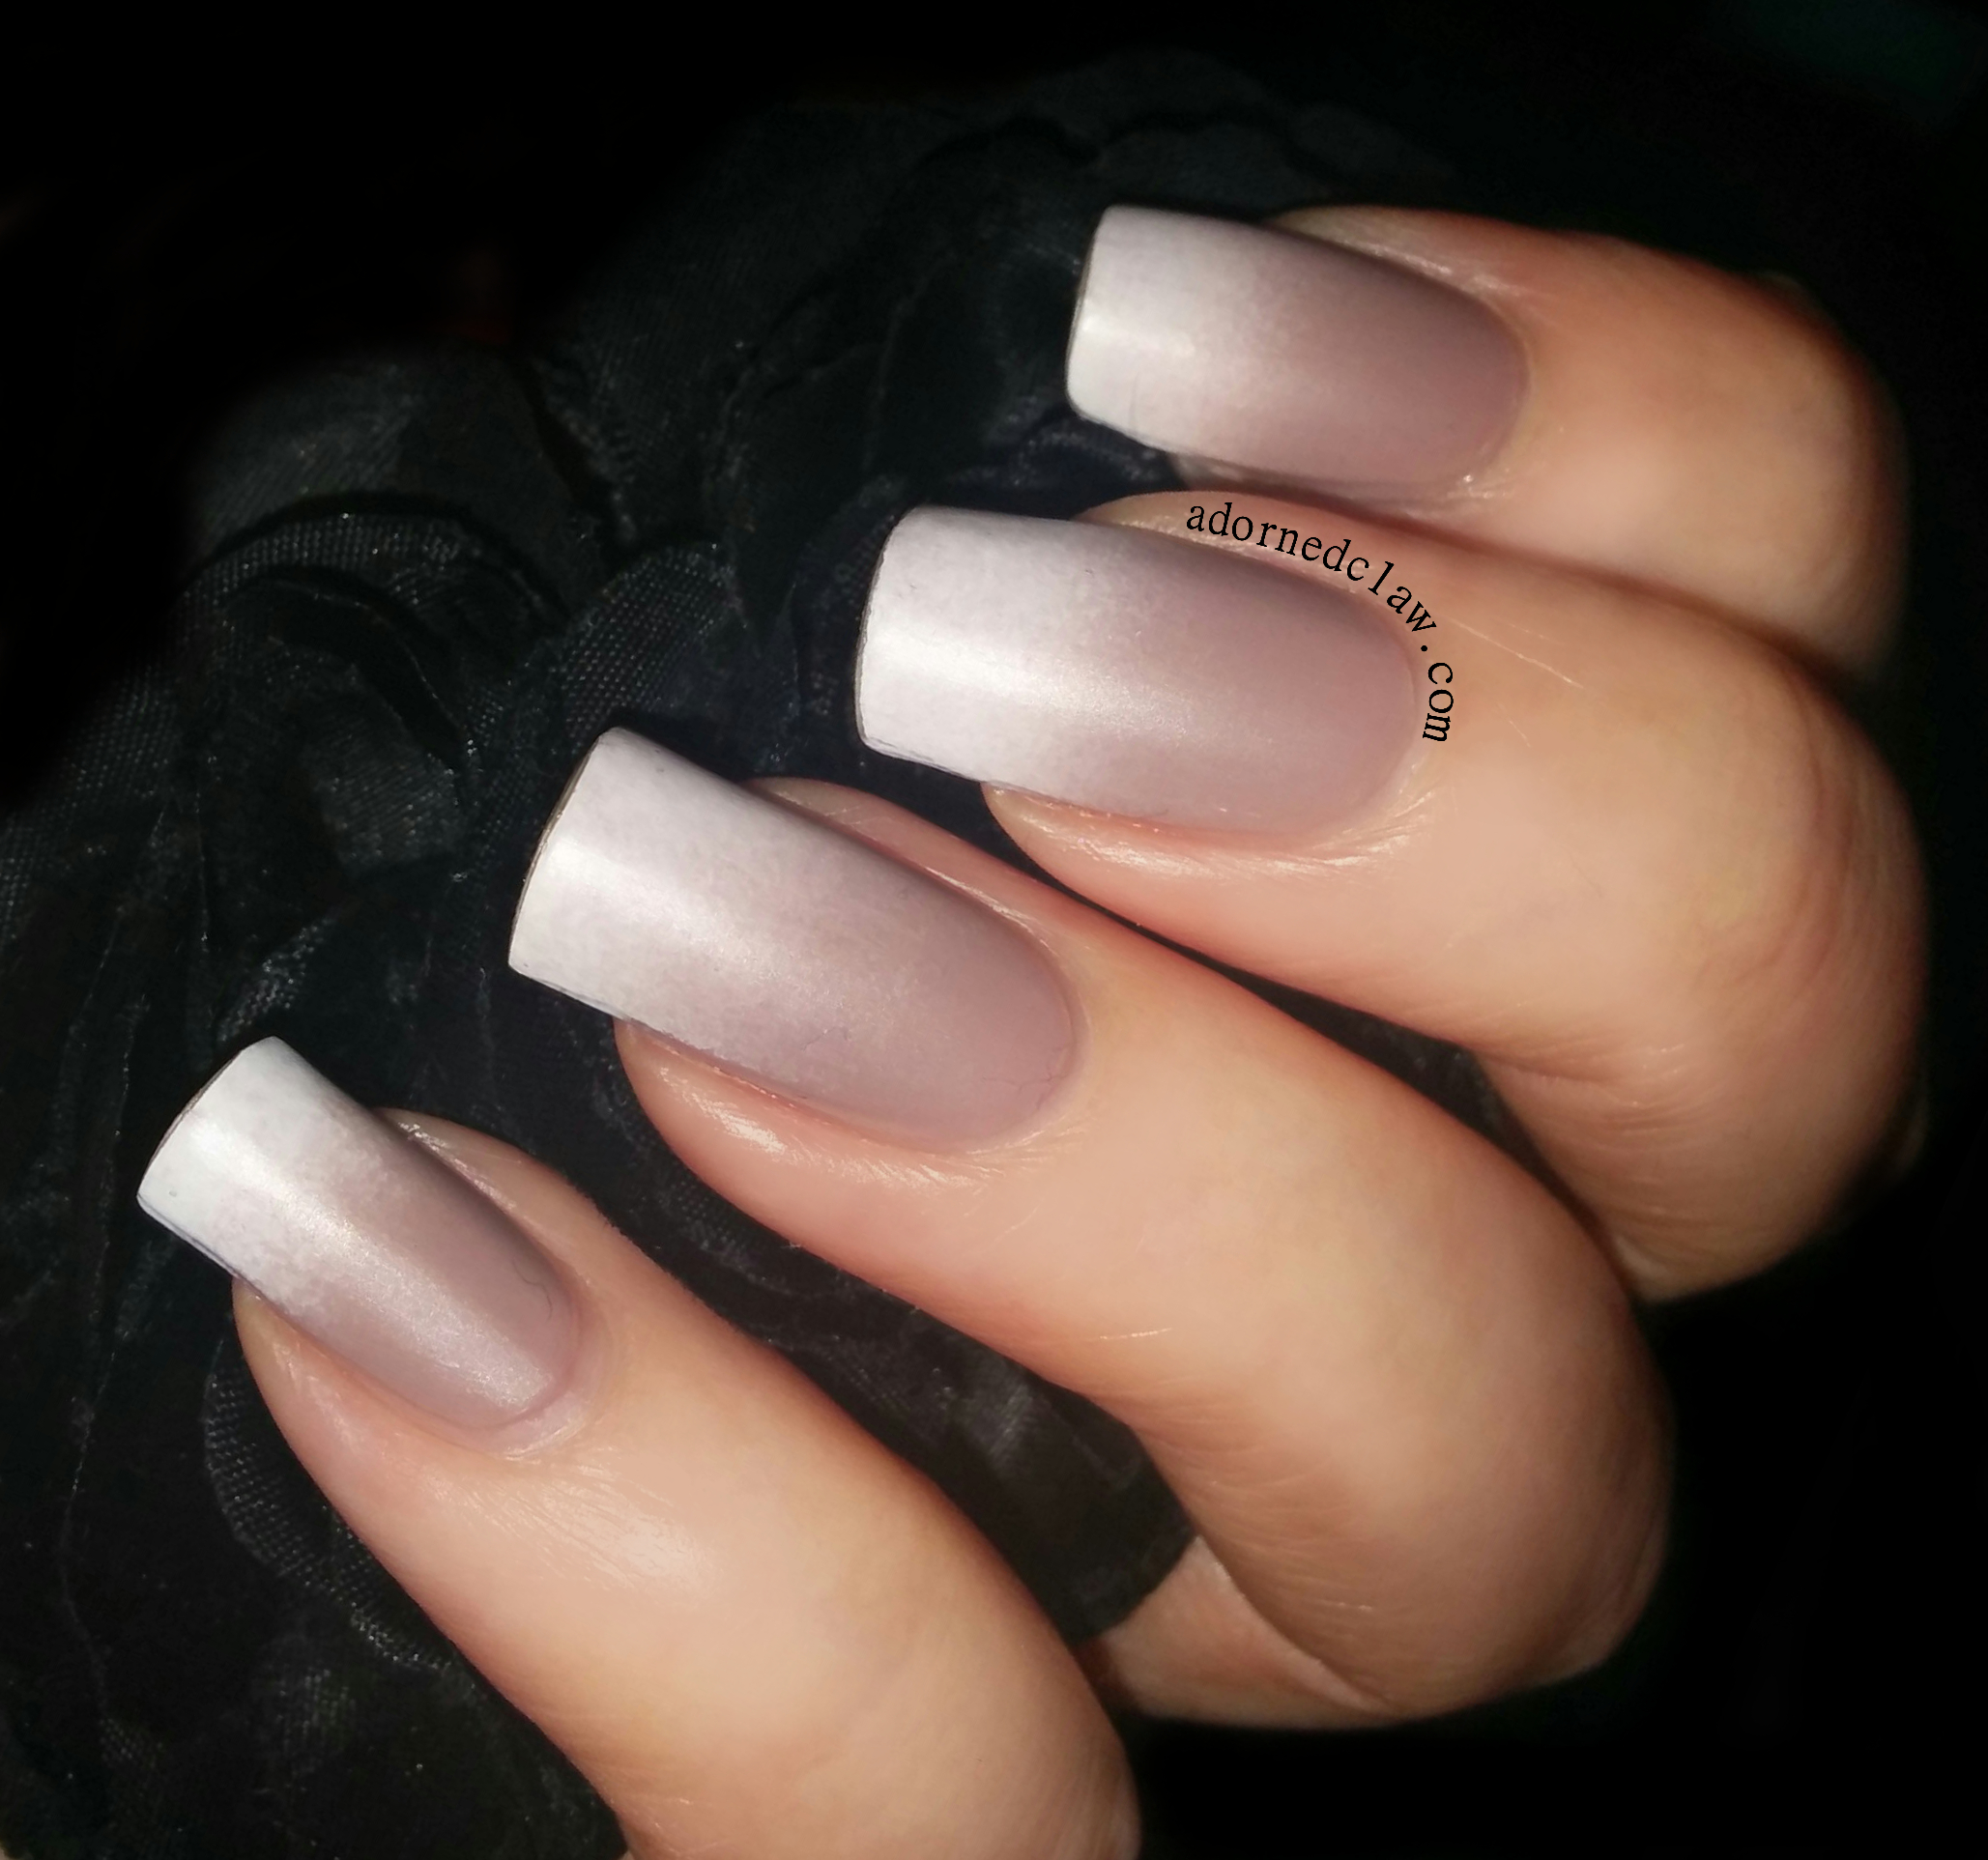 Nude and White Matte Gradient | The Adorned Claw